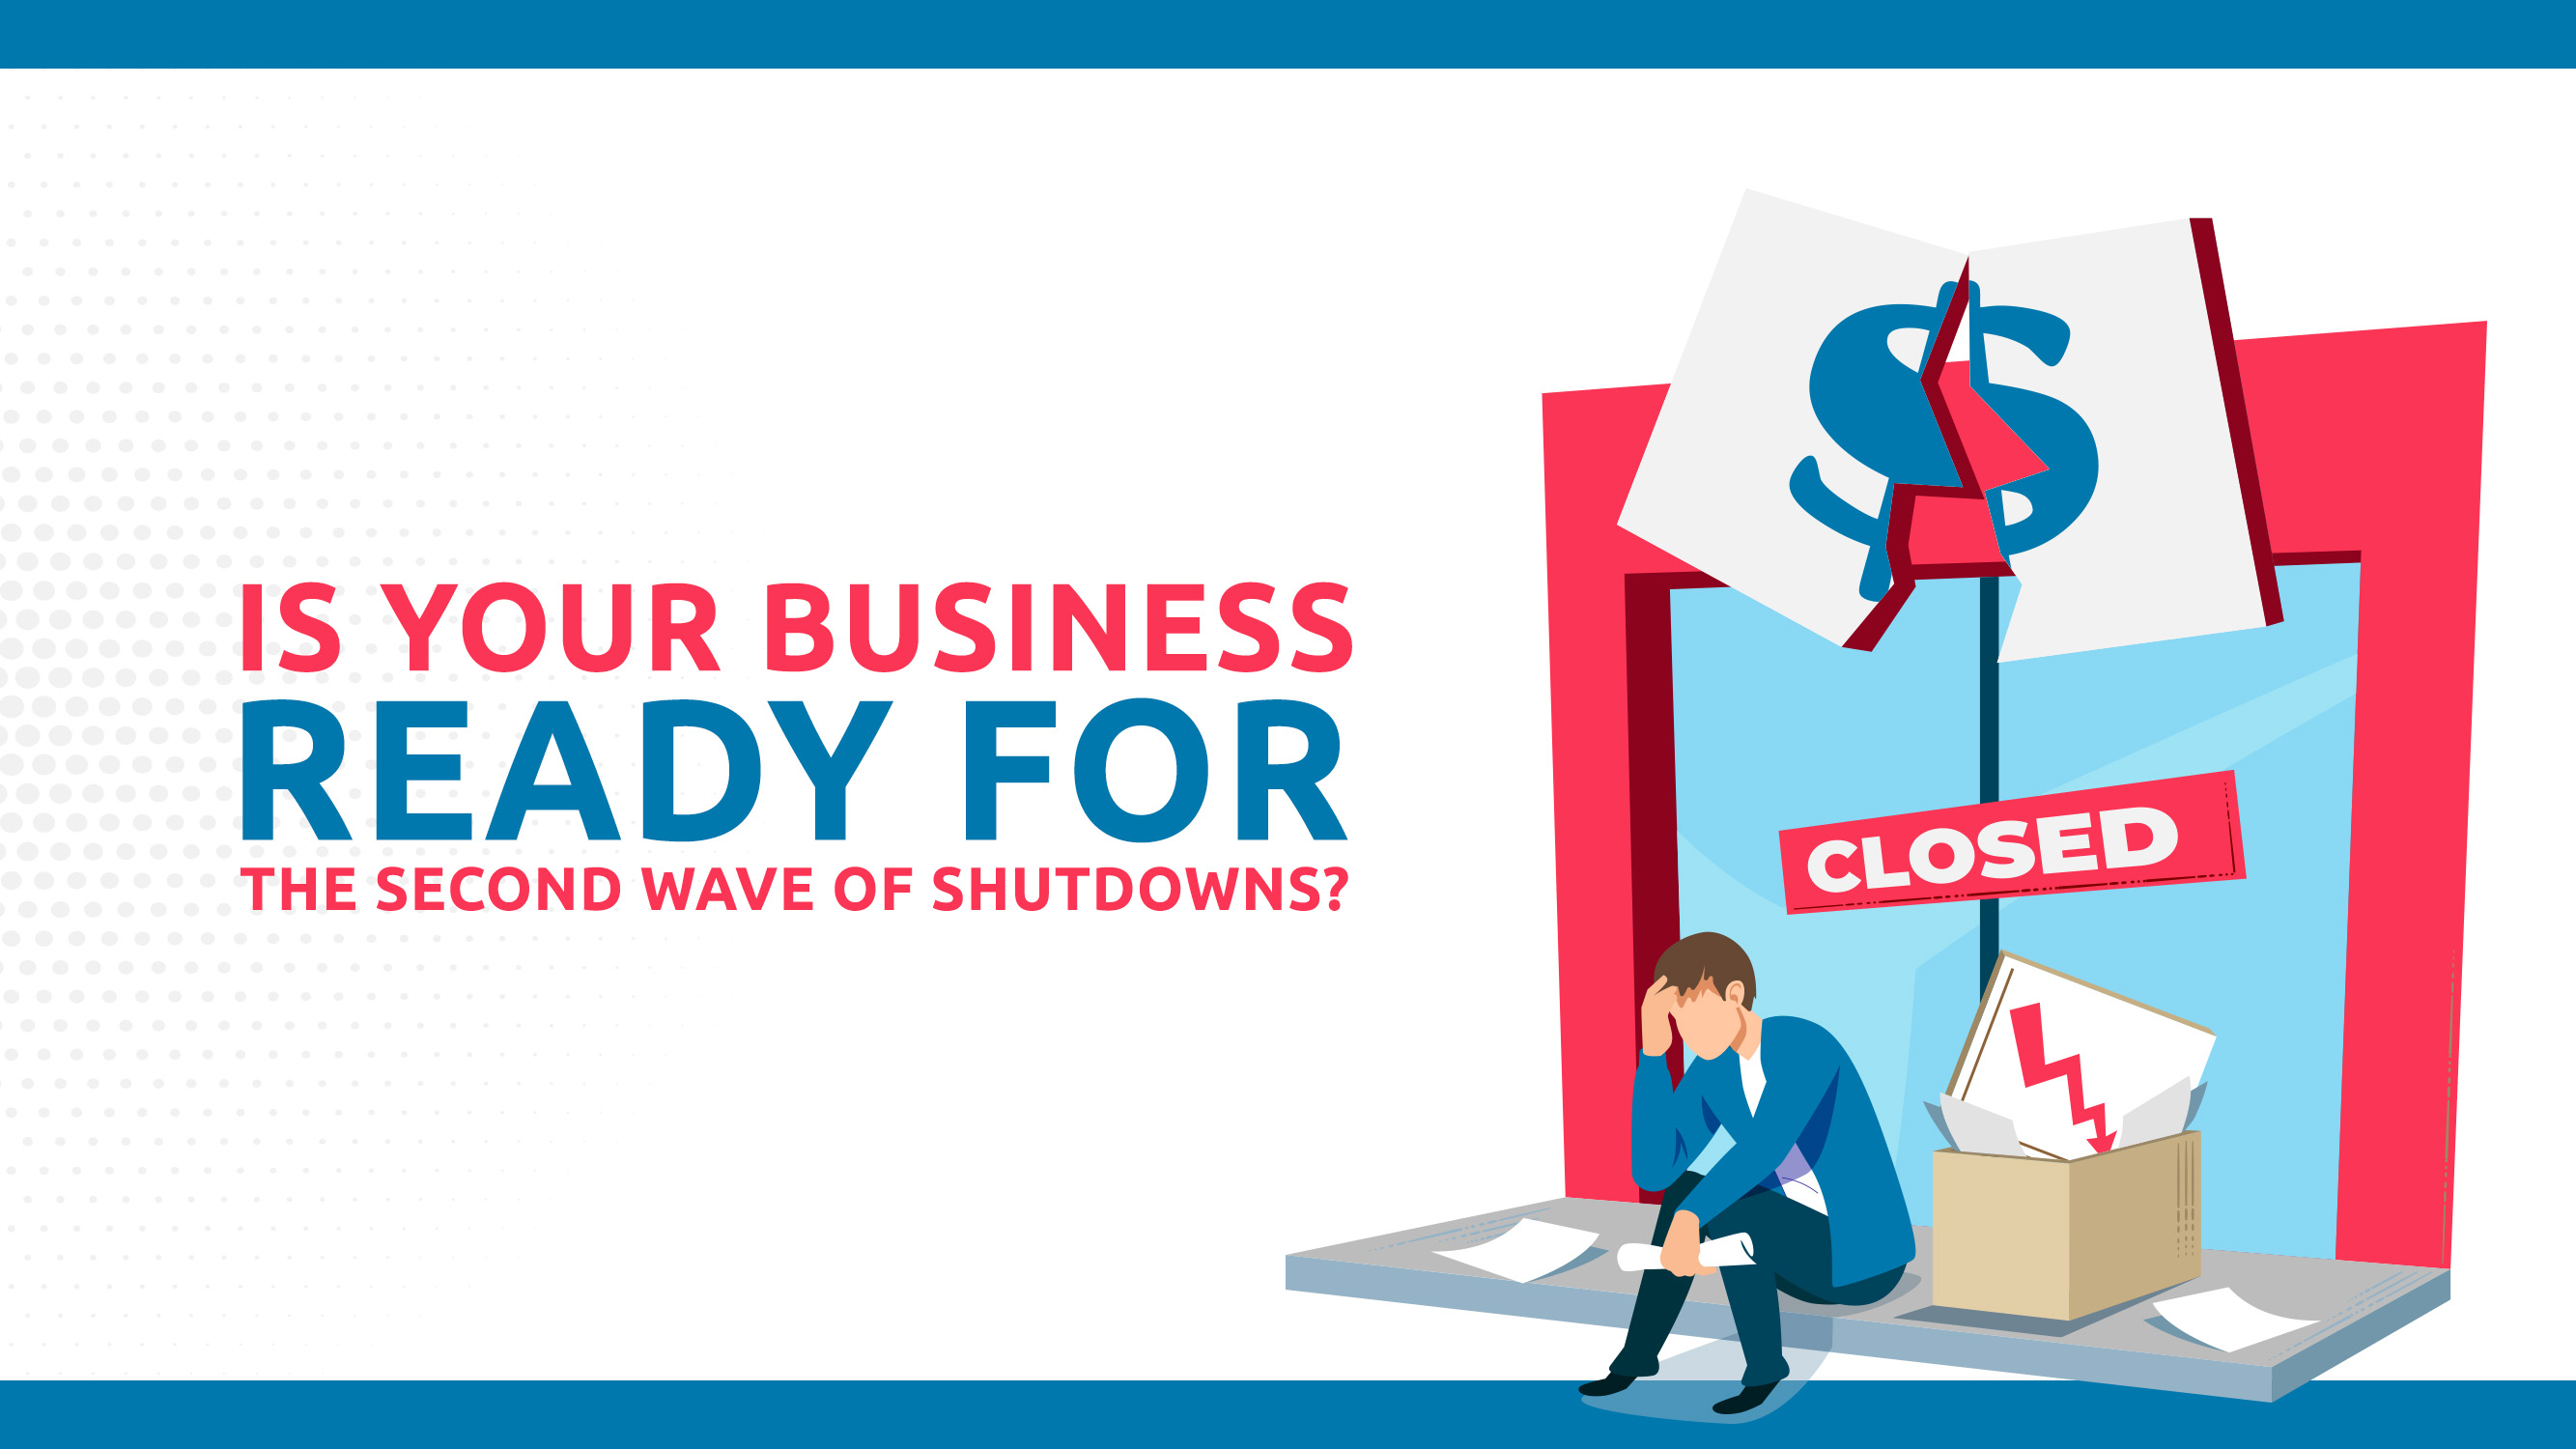 Is Your Business Ready For The Second Wave Of Shutdowns?